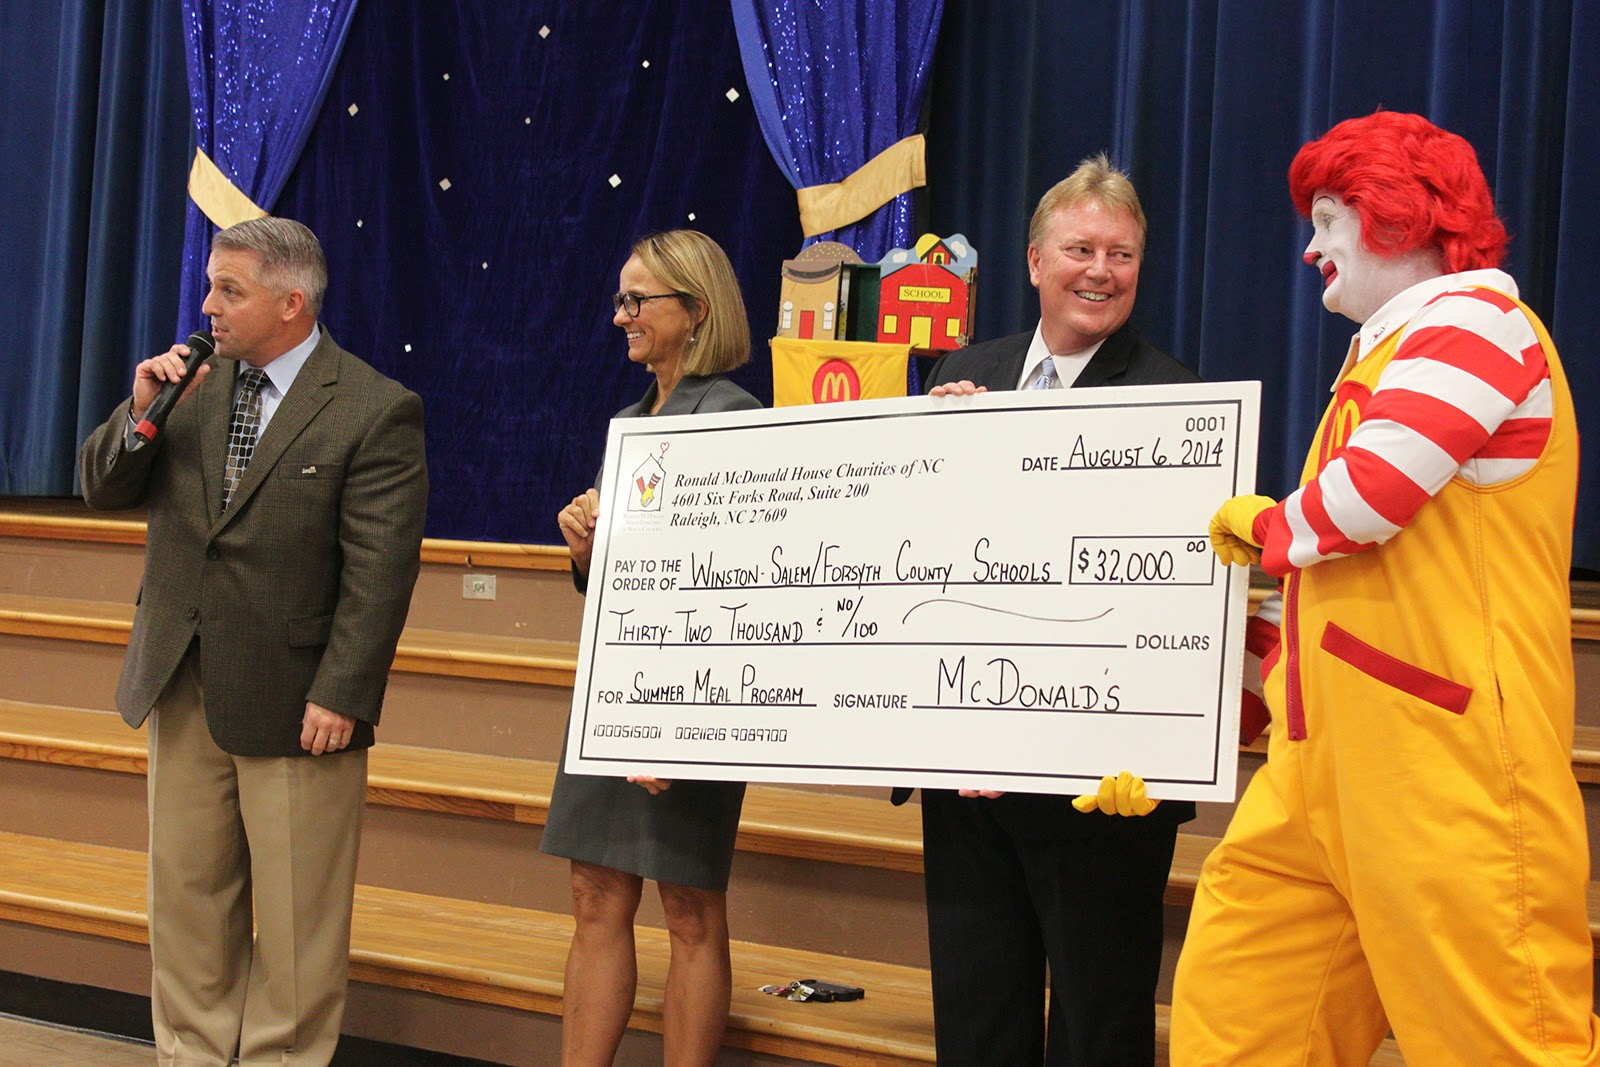 Your Permanent Record Ronald Mcdonald Brings 32 000 Check To Pay